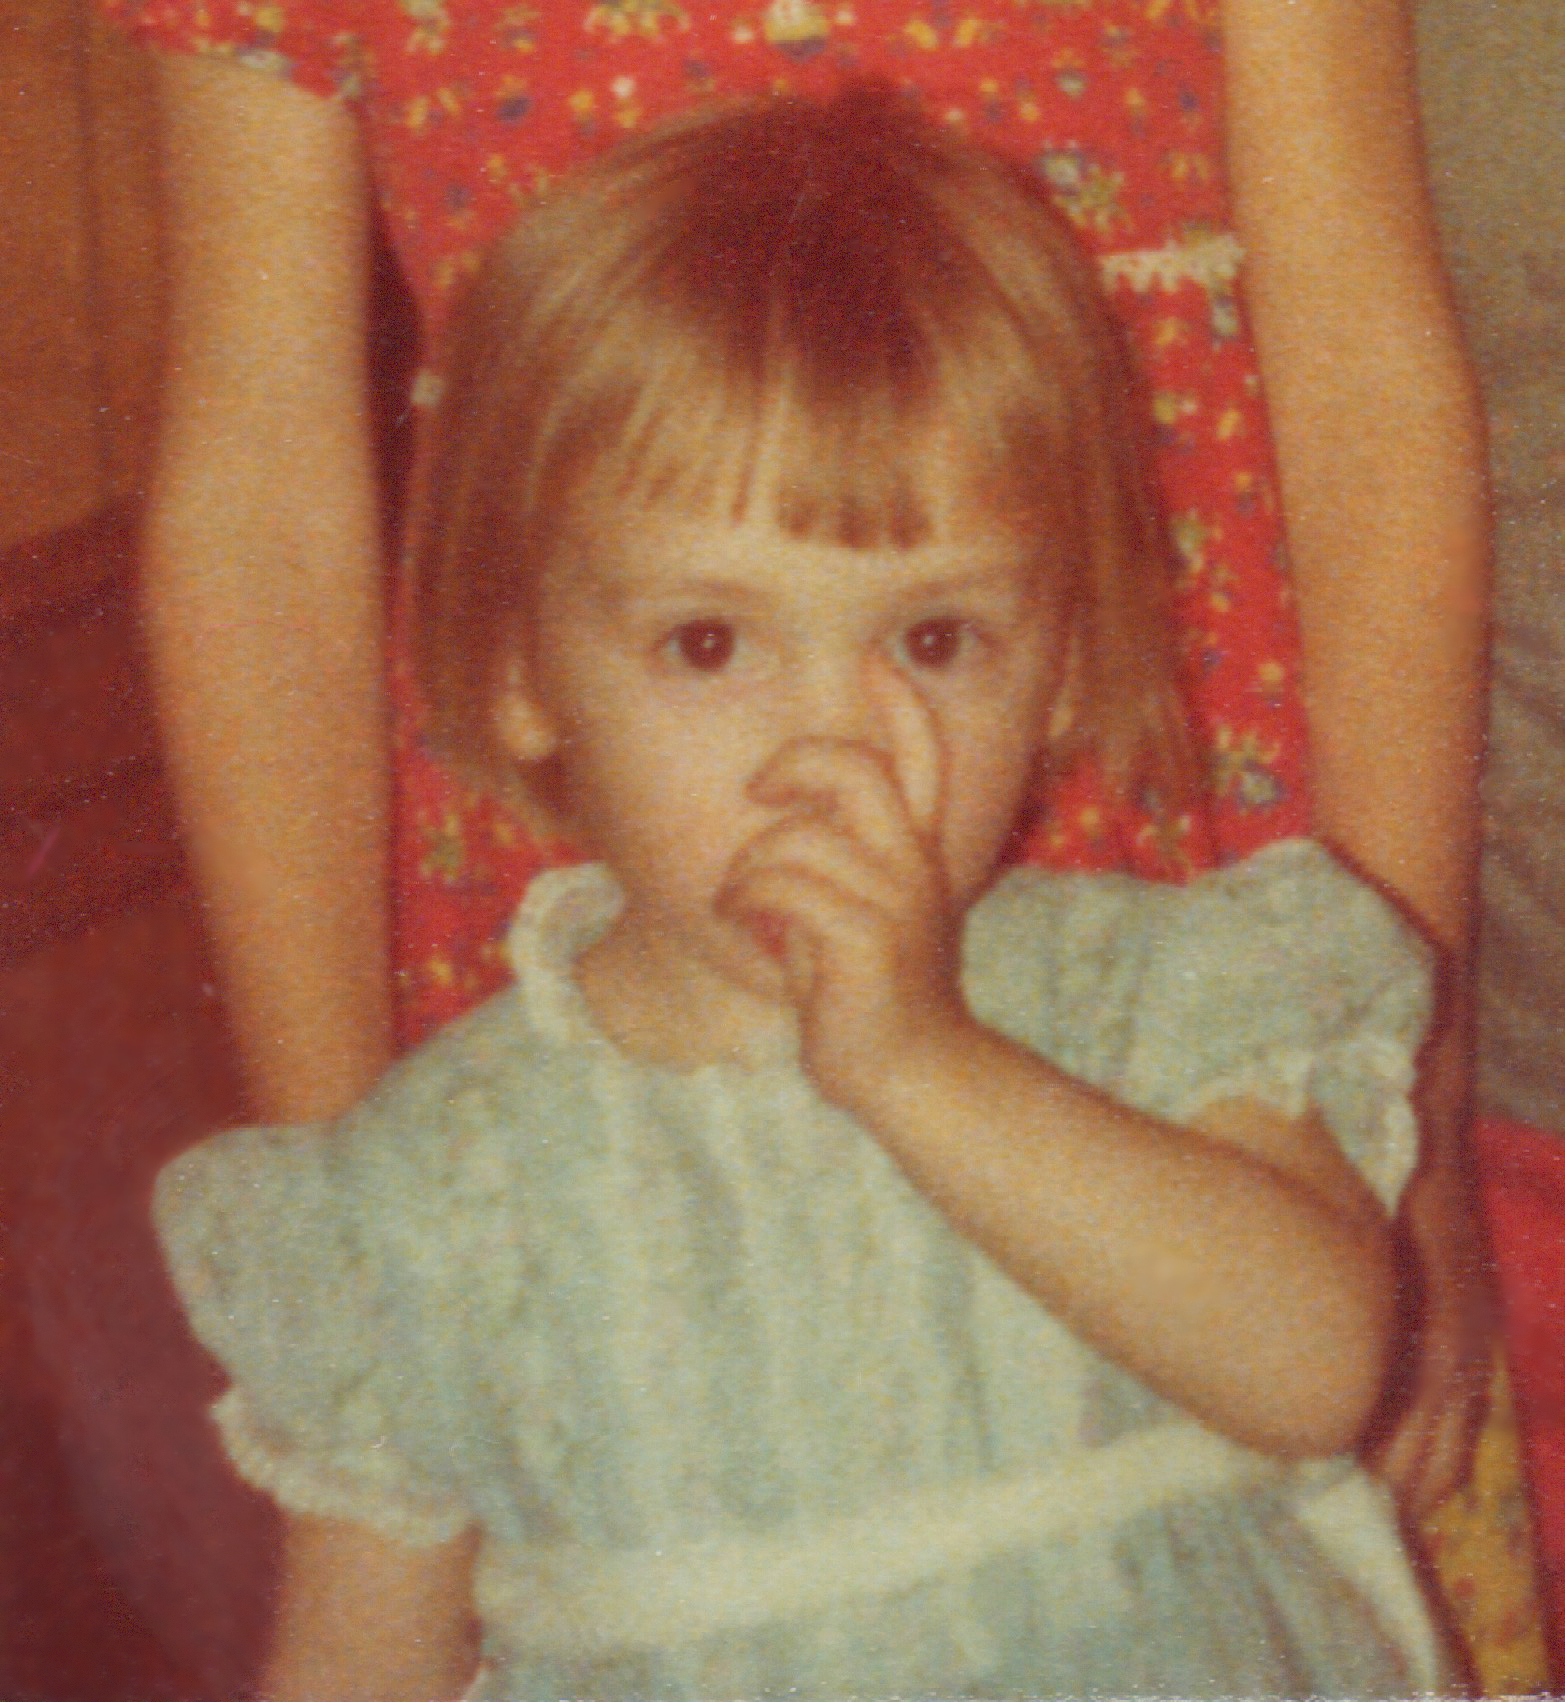 The author at the age of 2, sucking her thumb.